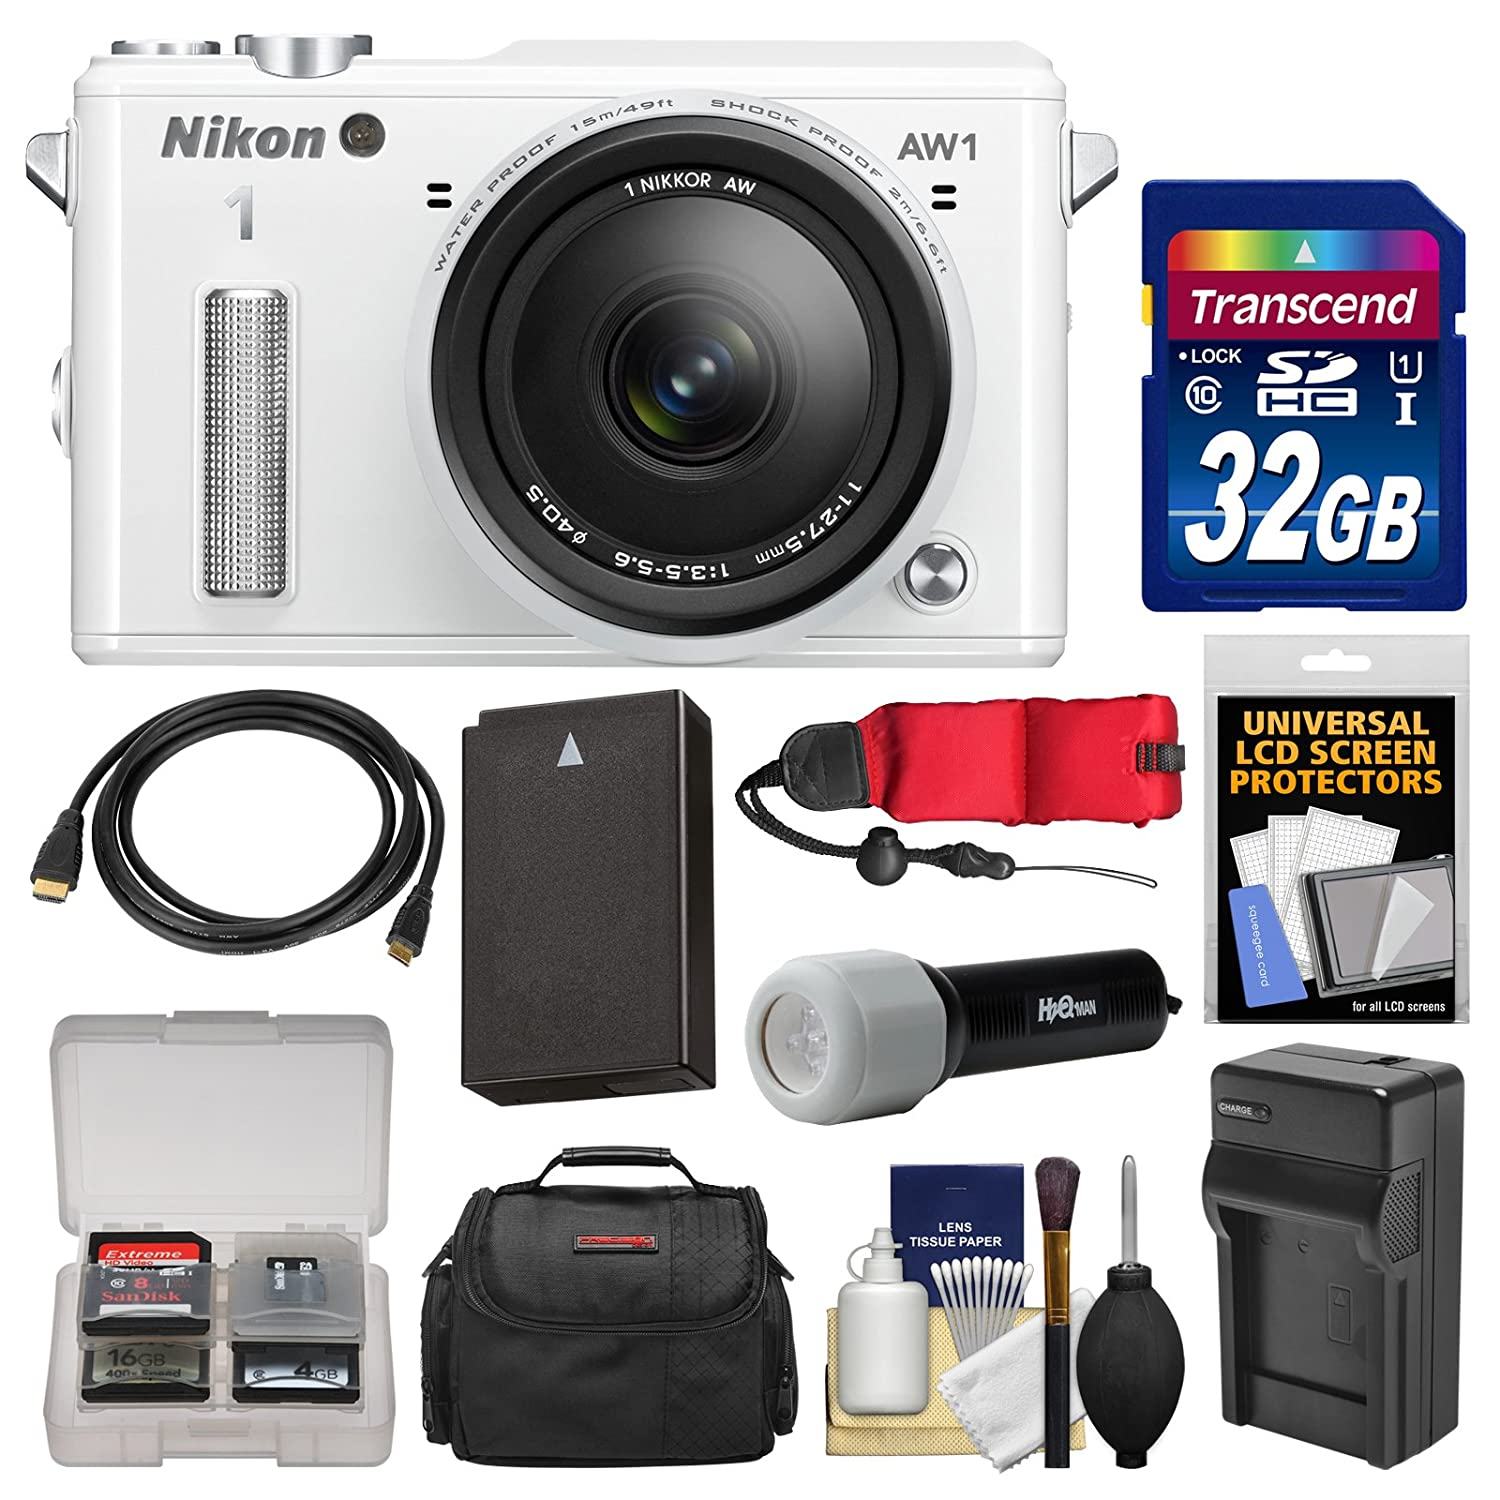 Nikon 1 AW1 Shock & Waterproof Digital Camera Body with AW 11-27.5mm Lens (White) with 32GB Card + Case + Battery & Charger + LED Torch + Kit